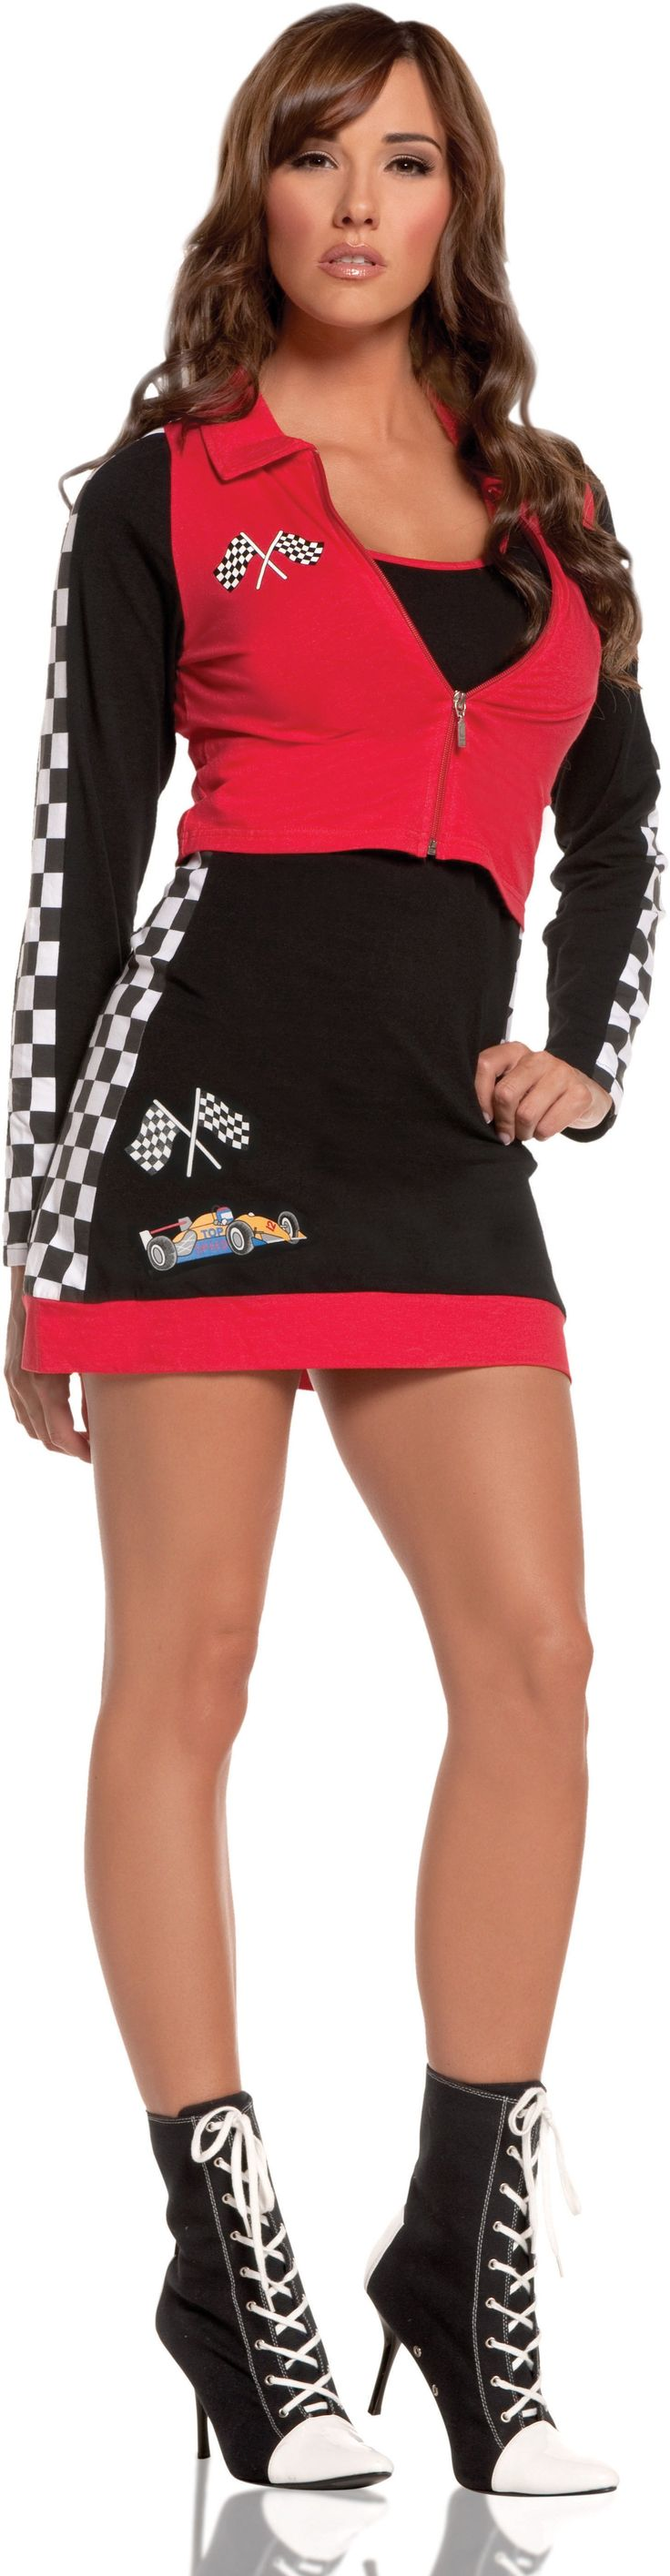 High Speed Chase Adult Costume,$44.99